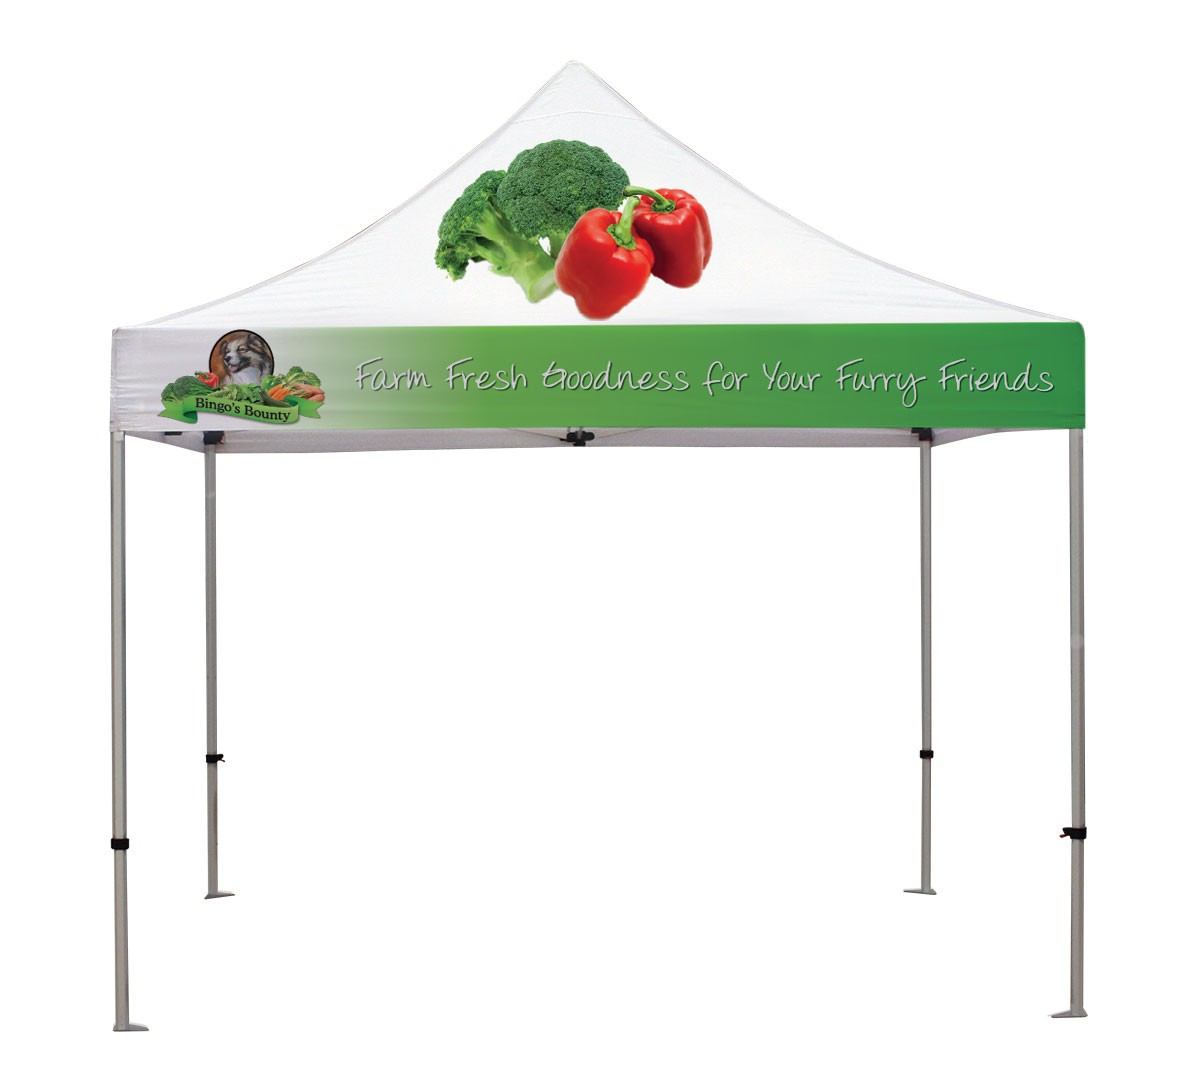 Canopy Tent Kit with custom printed top